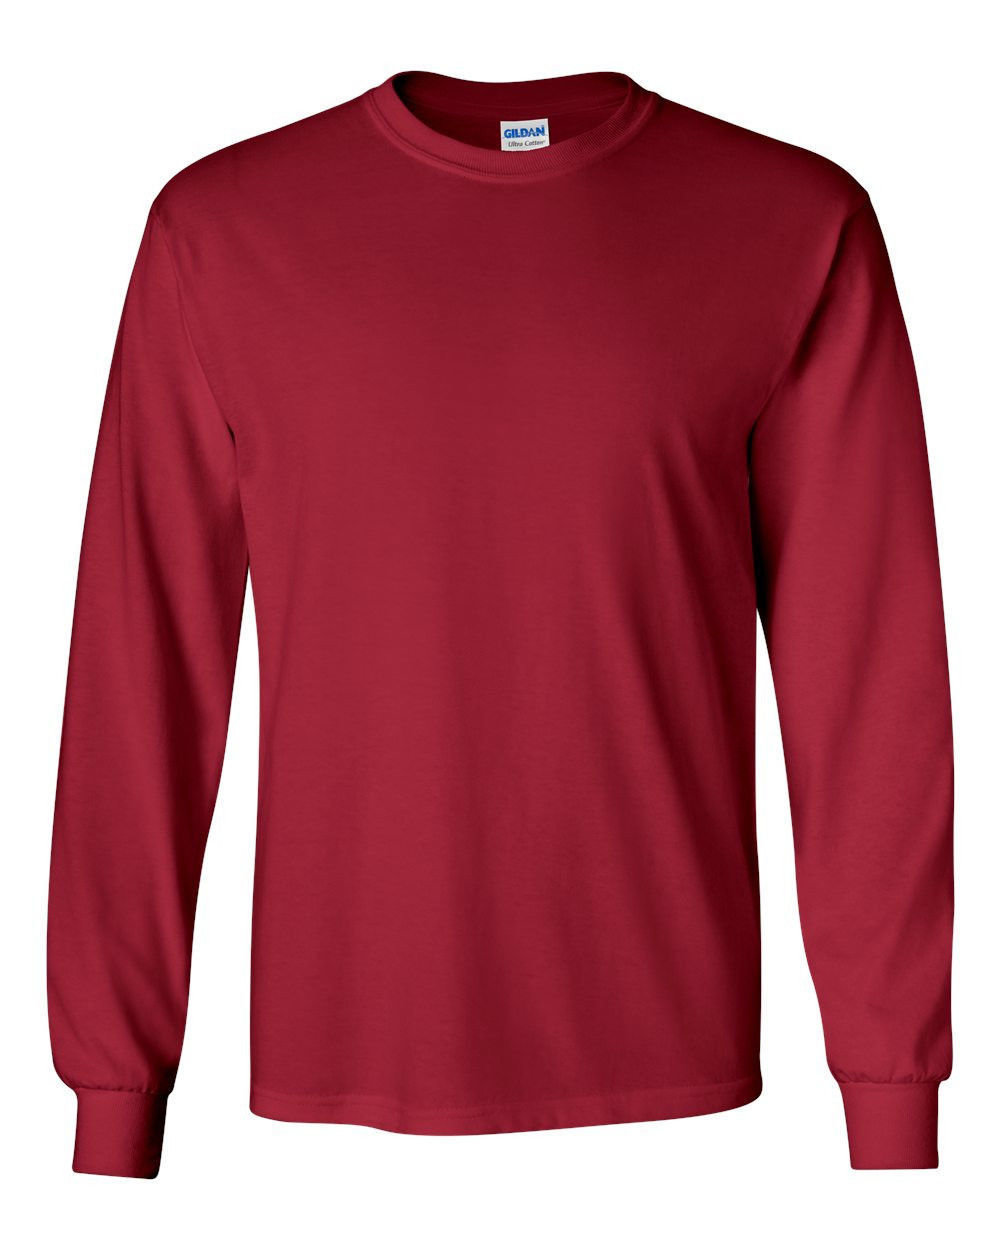 Gildan Long Sleeve Shirt with Logo